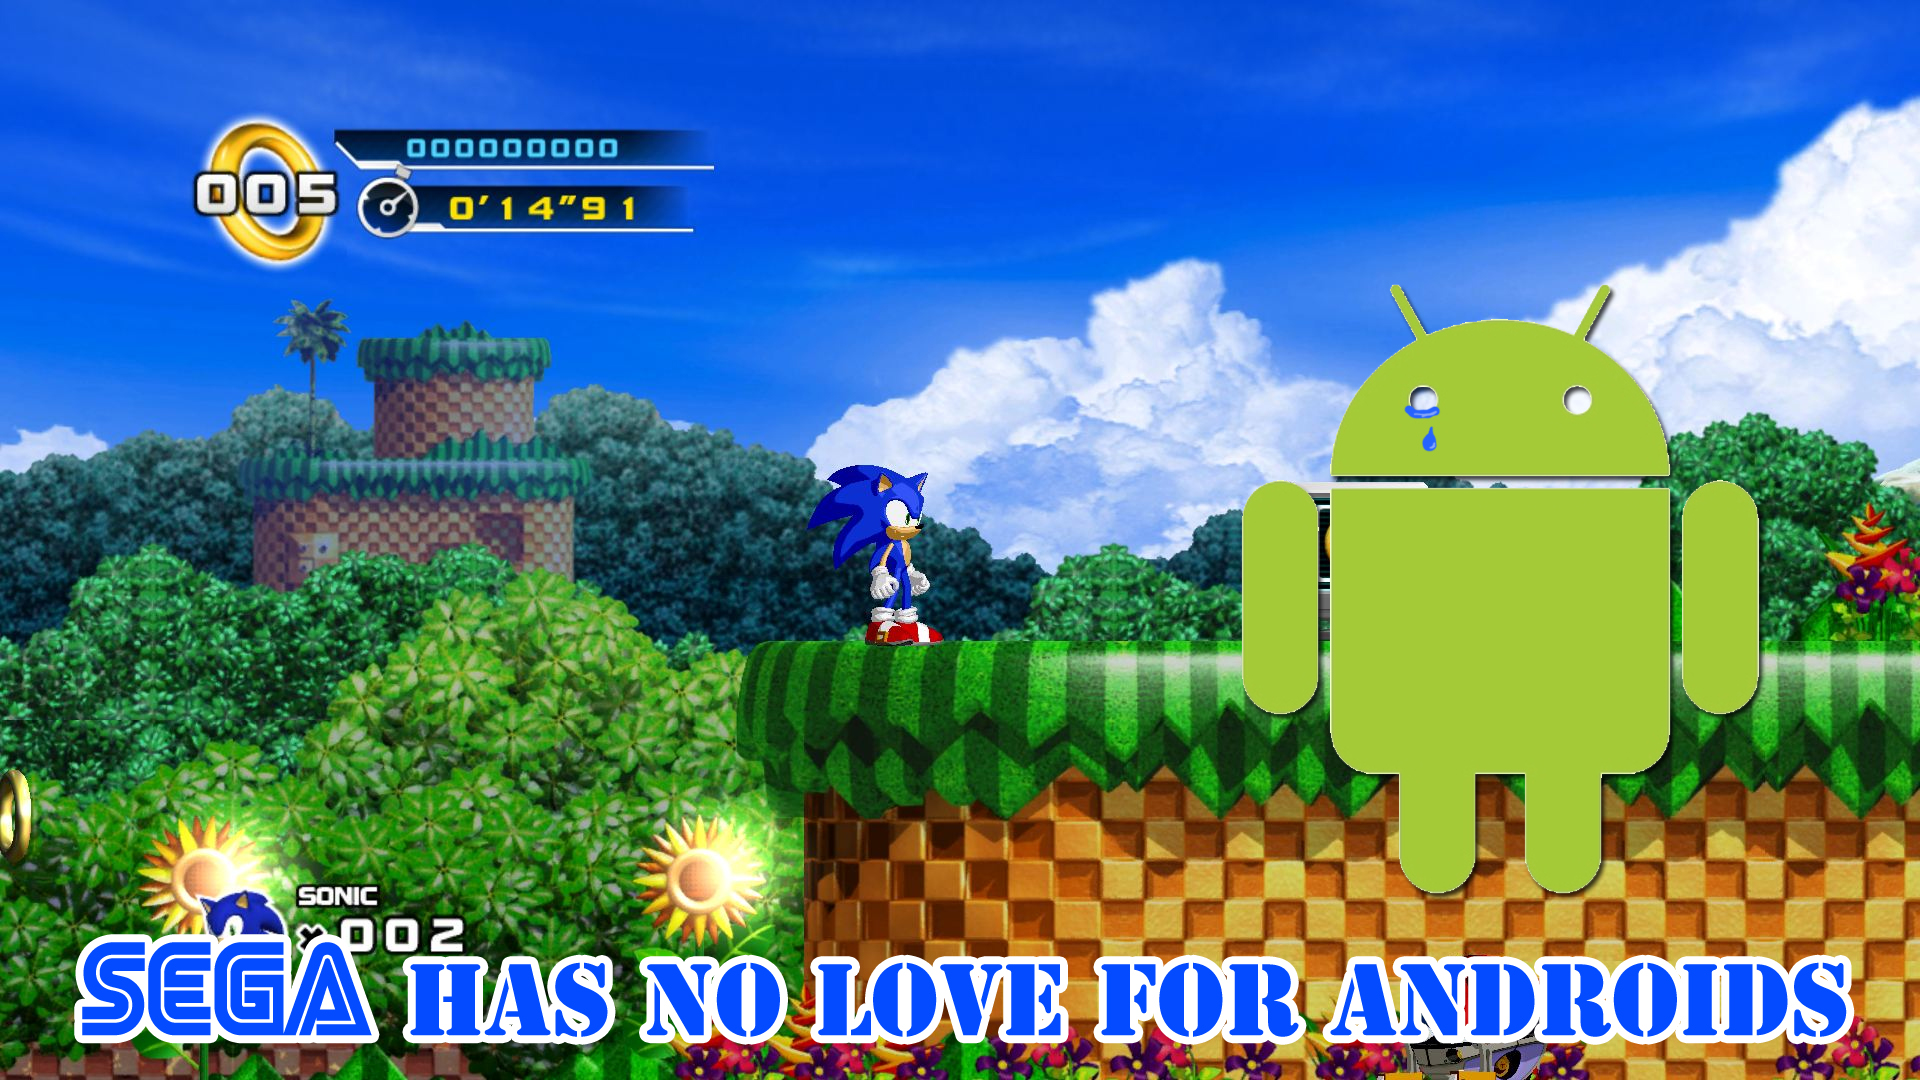 Phone Sega Games For Android Phones sega says no to sonic 4 for android phones segabits according the npd os is top selling in america right now given this sudden surge popularity you would think wan